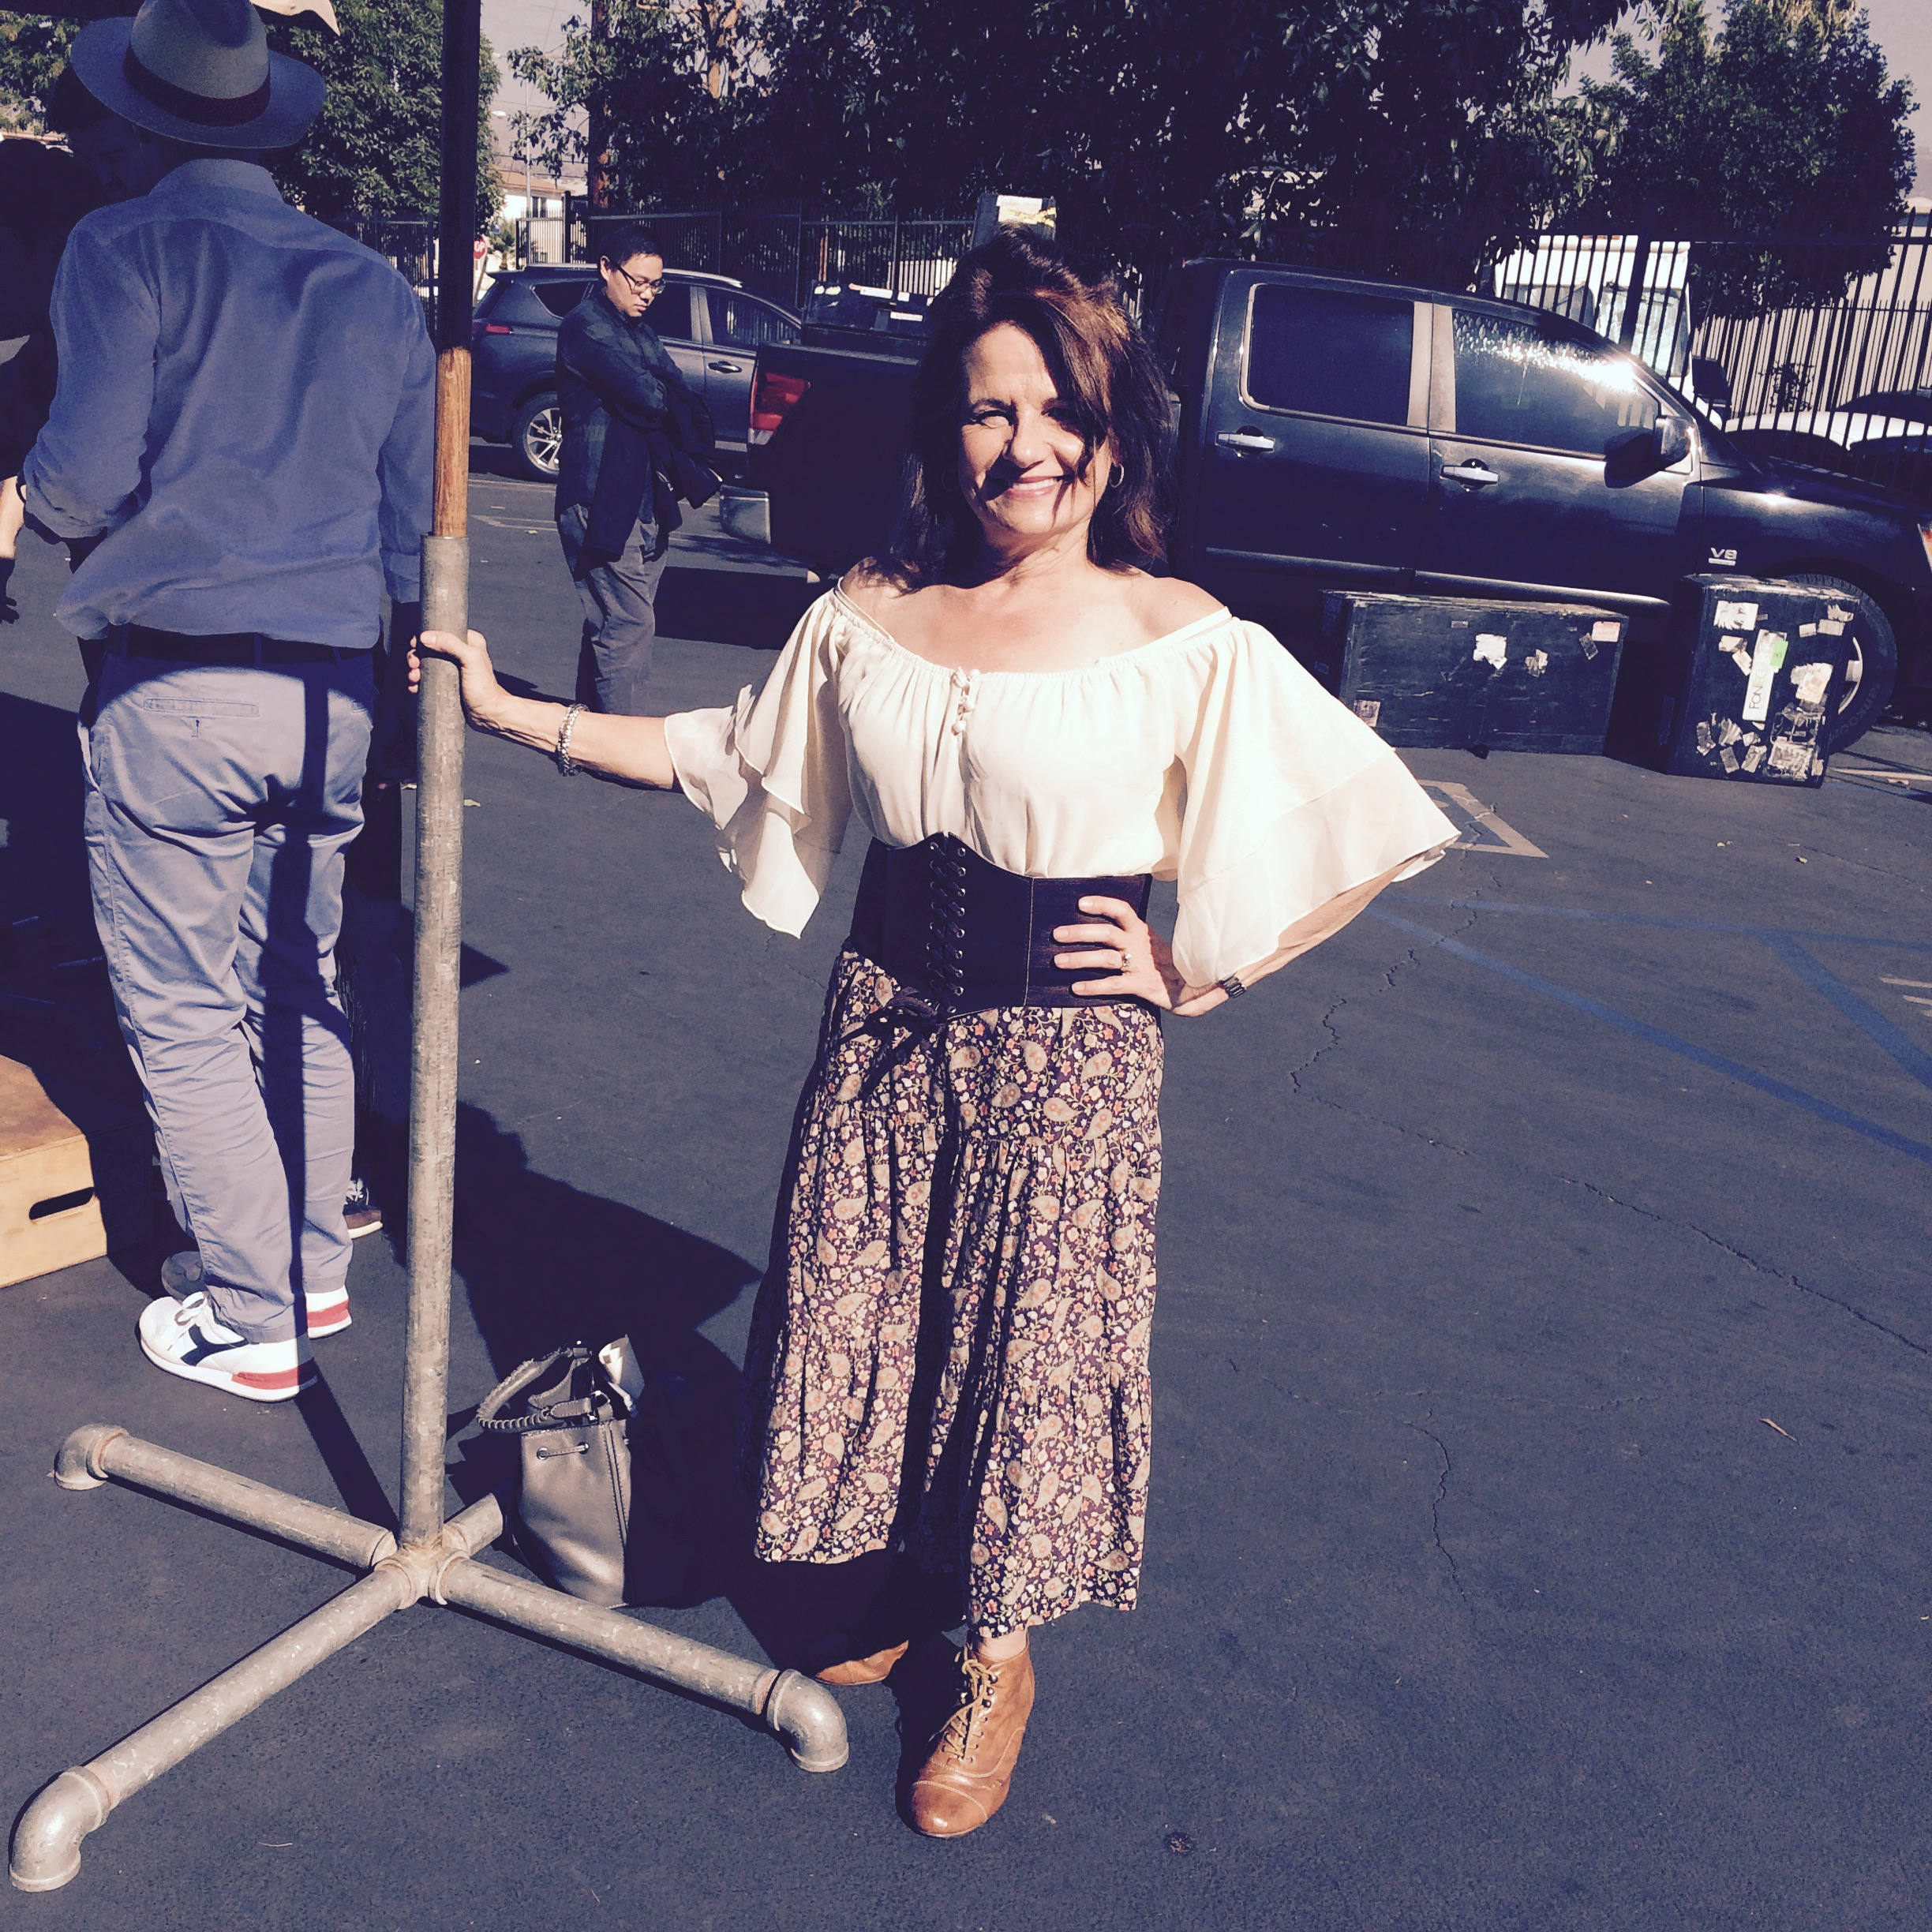 ATimelyPerspective.com contributor Nancy Olson on set in Hollywood with Hamilton.